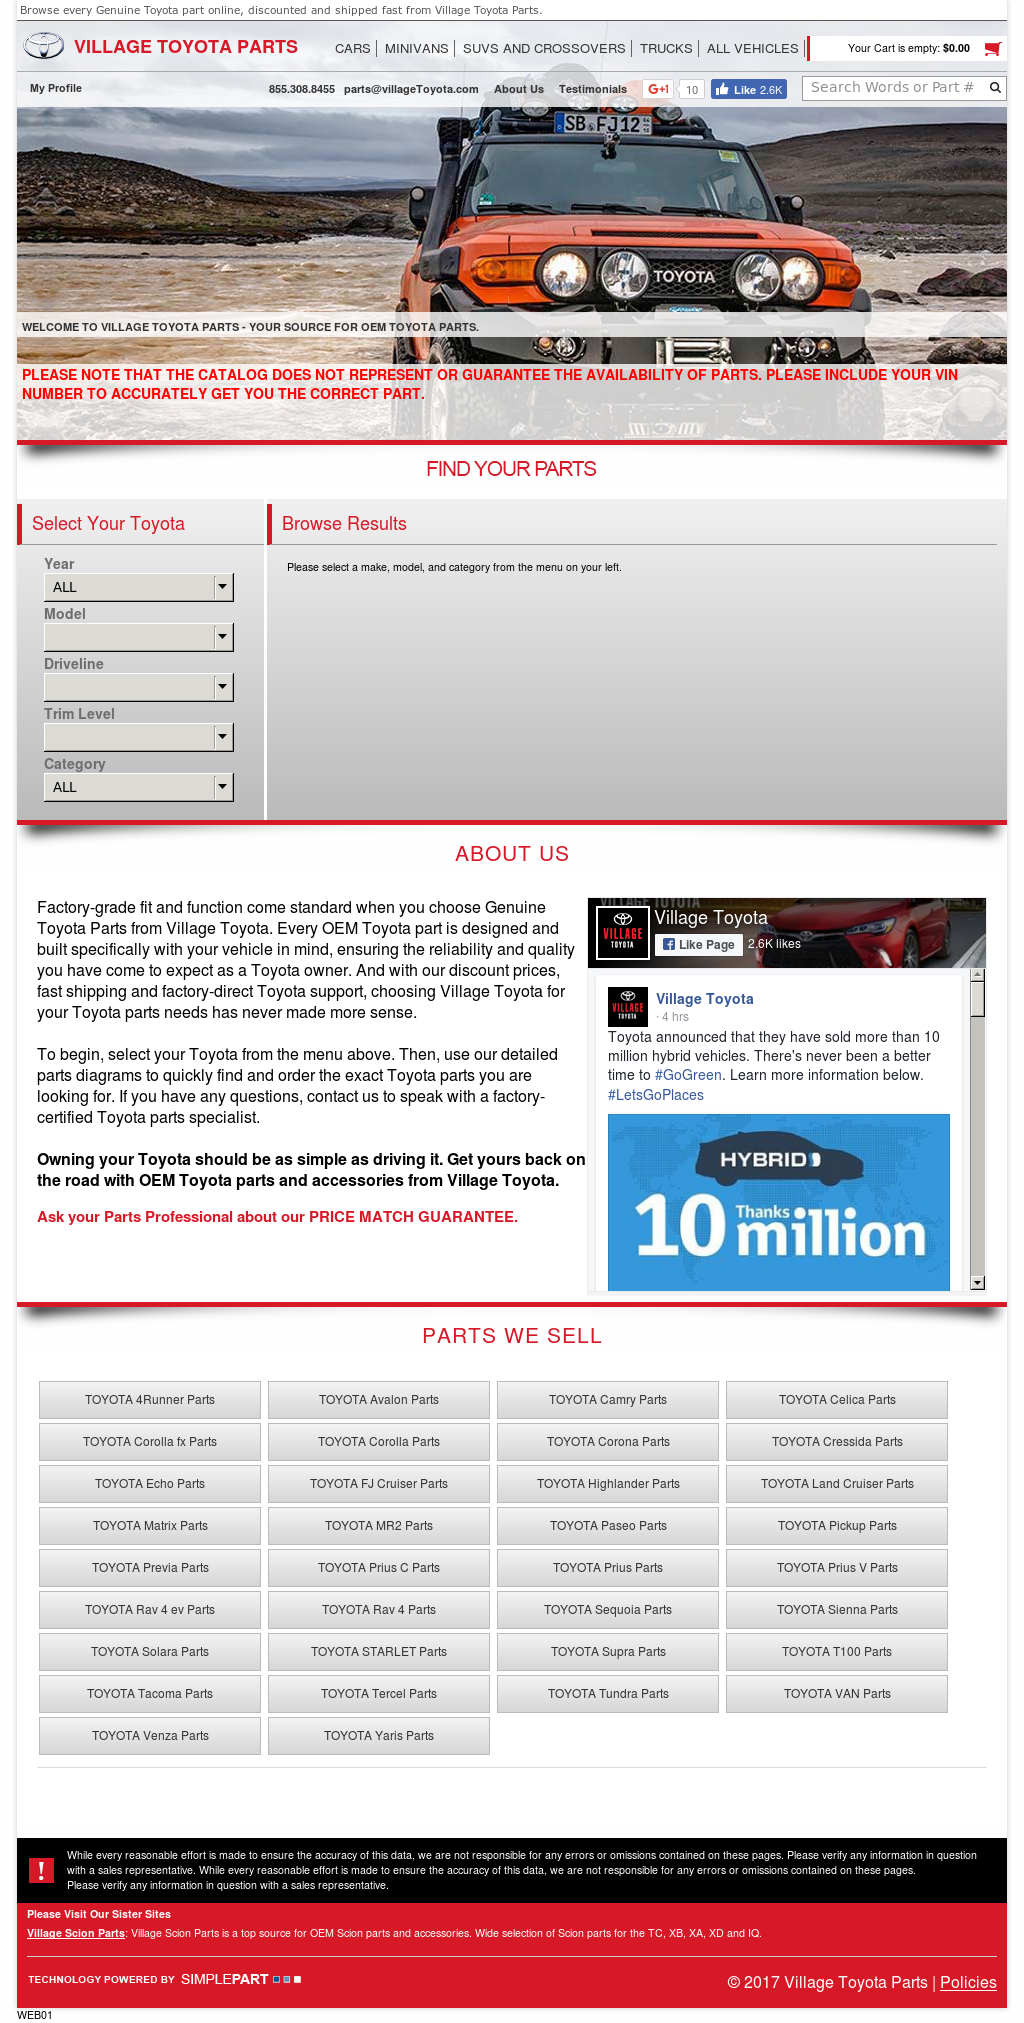 Village Toyota Parts >> Village Toyota Parts Competitors Revenue And Employees Owler